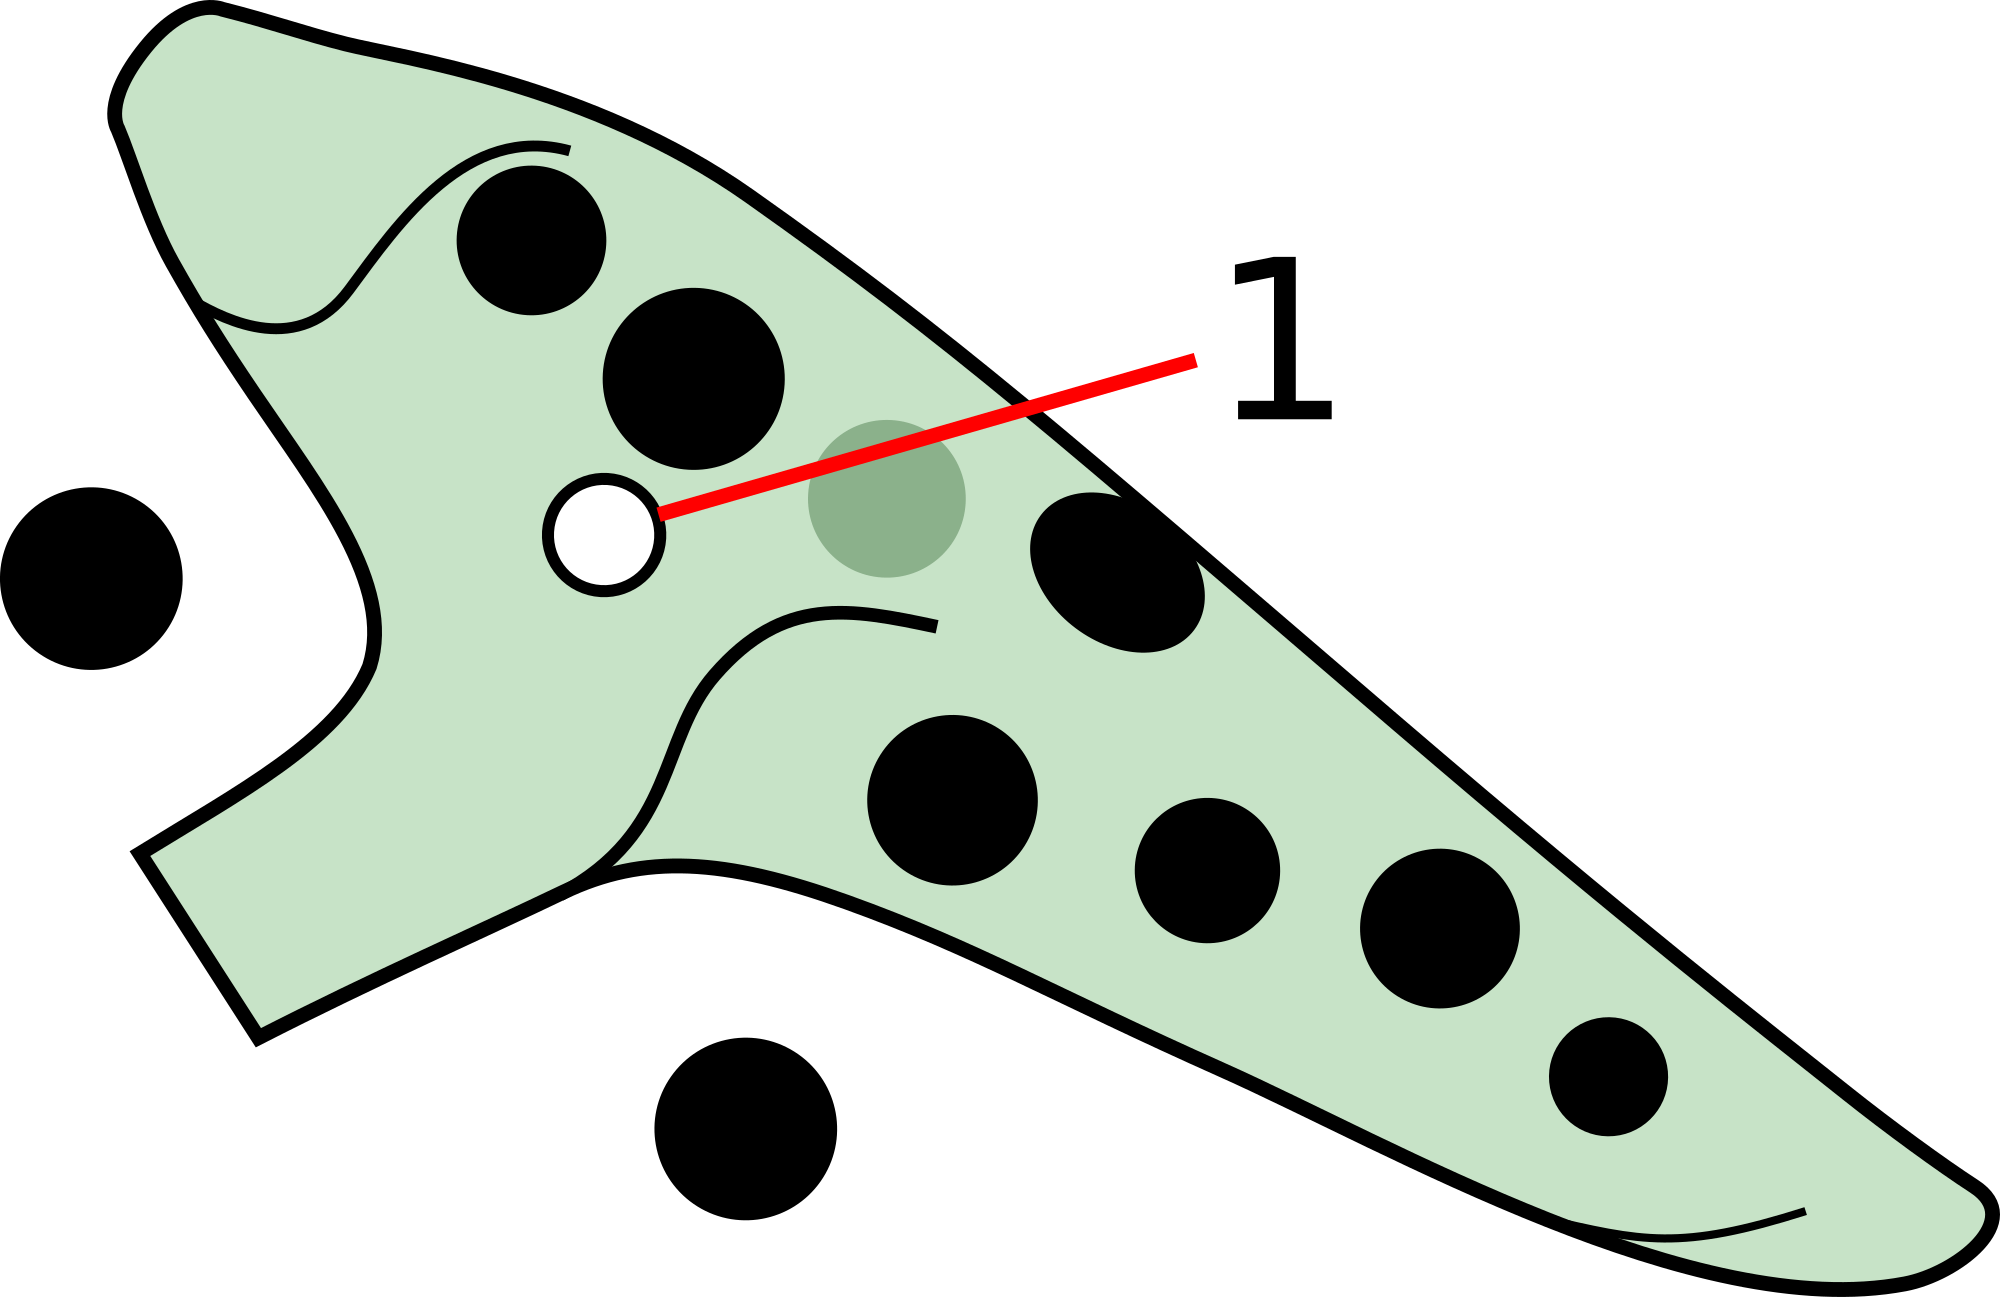 An 11 hole ocarina with a subhole next to the left middle finger. On an 11 hole ocarina, the subhole can be positioned on either the left or right middle finger